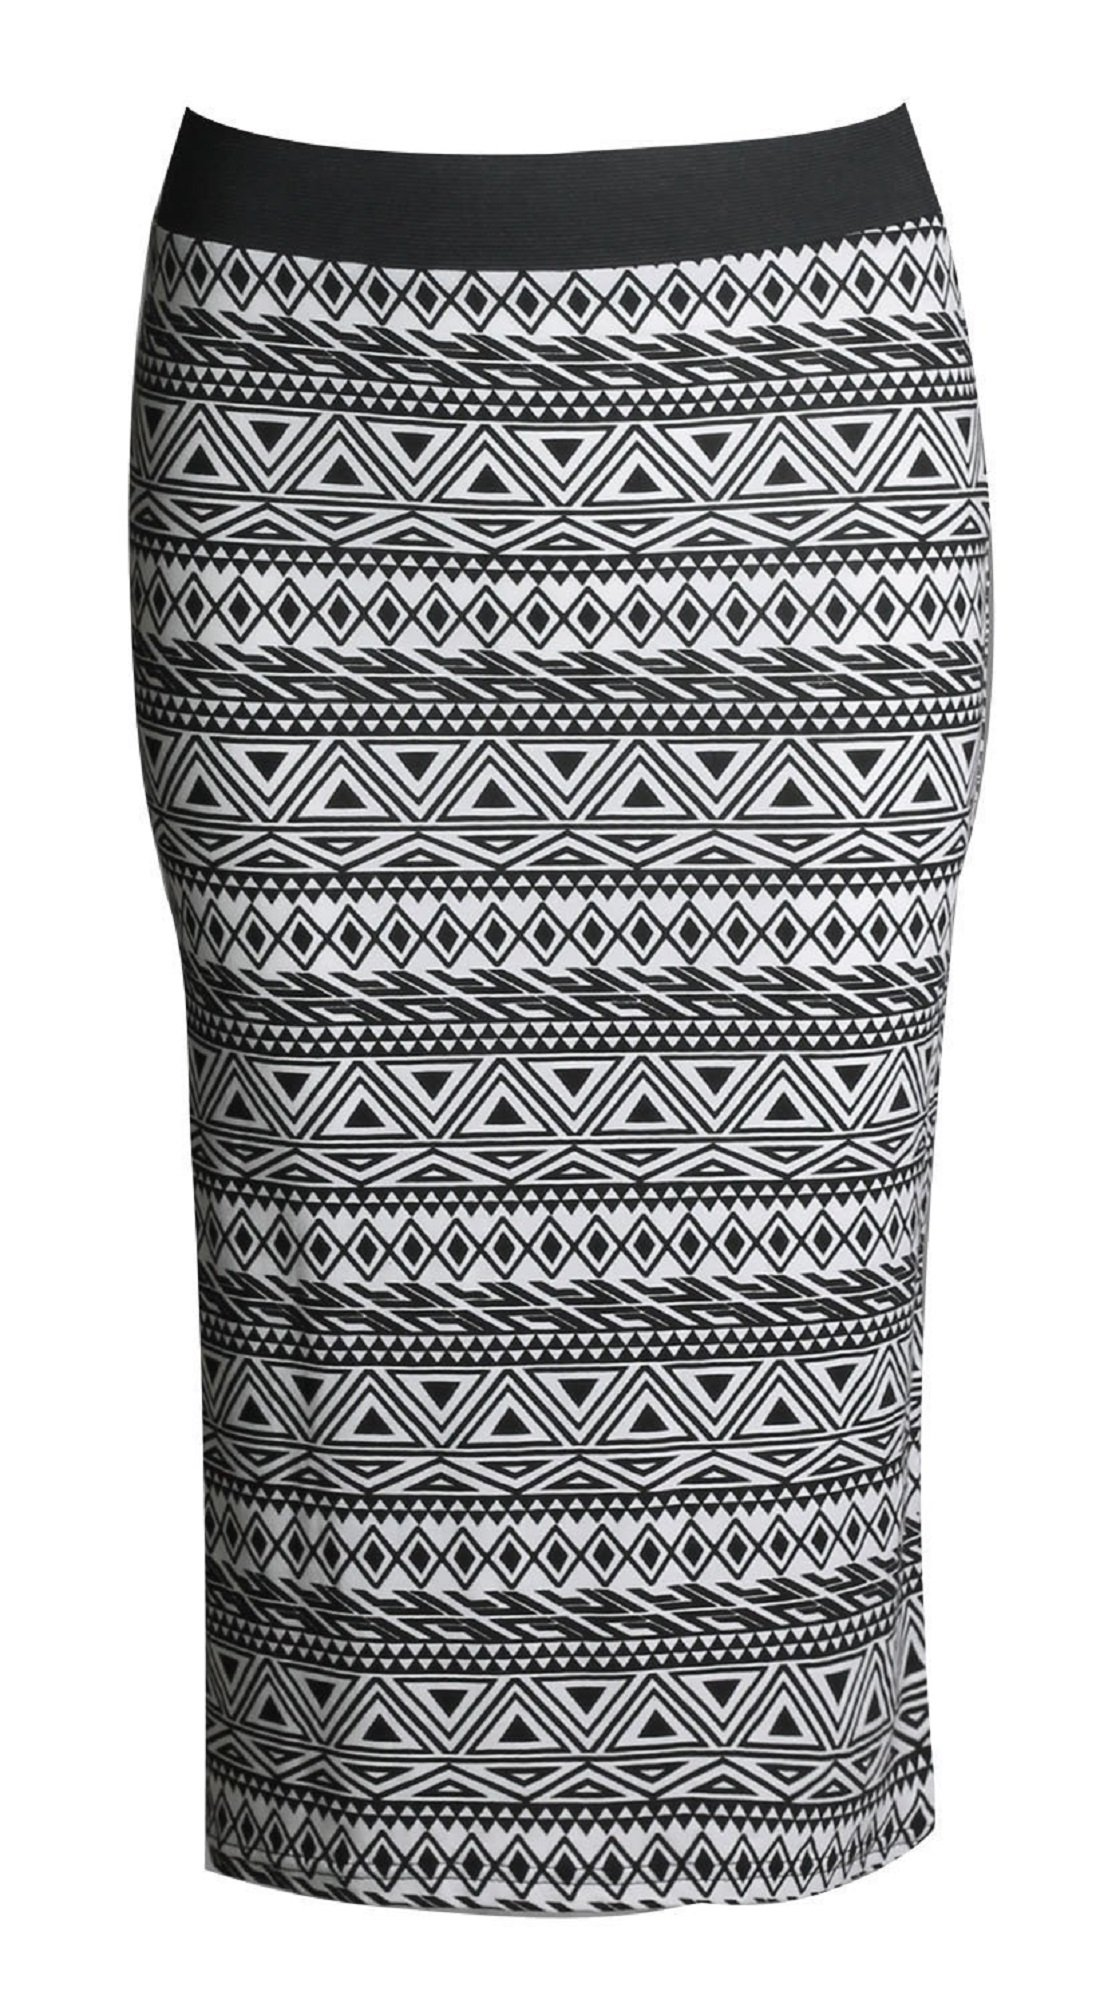 Womens Celebrity Inspired High Waisted Wetlook Bodycon Pencil Skirt (M-L, Small Aztec)